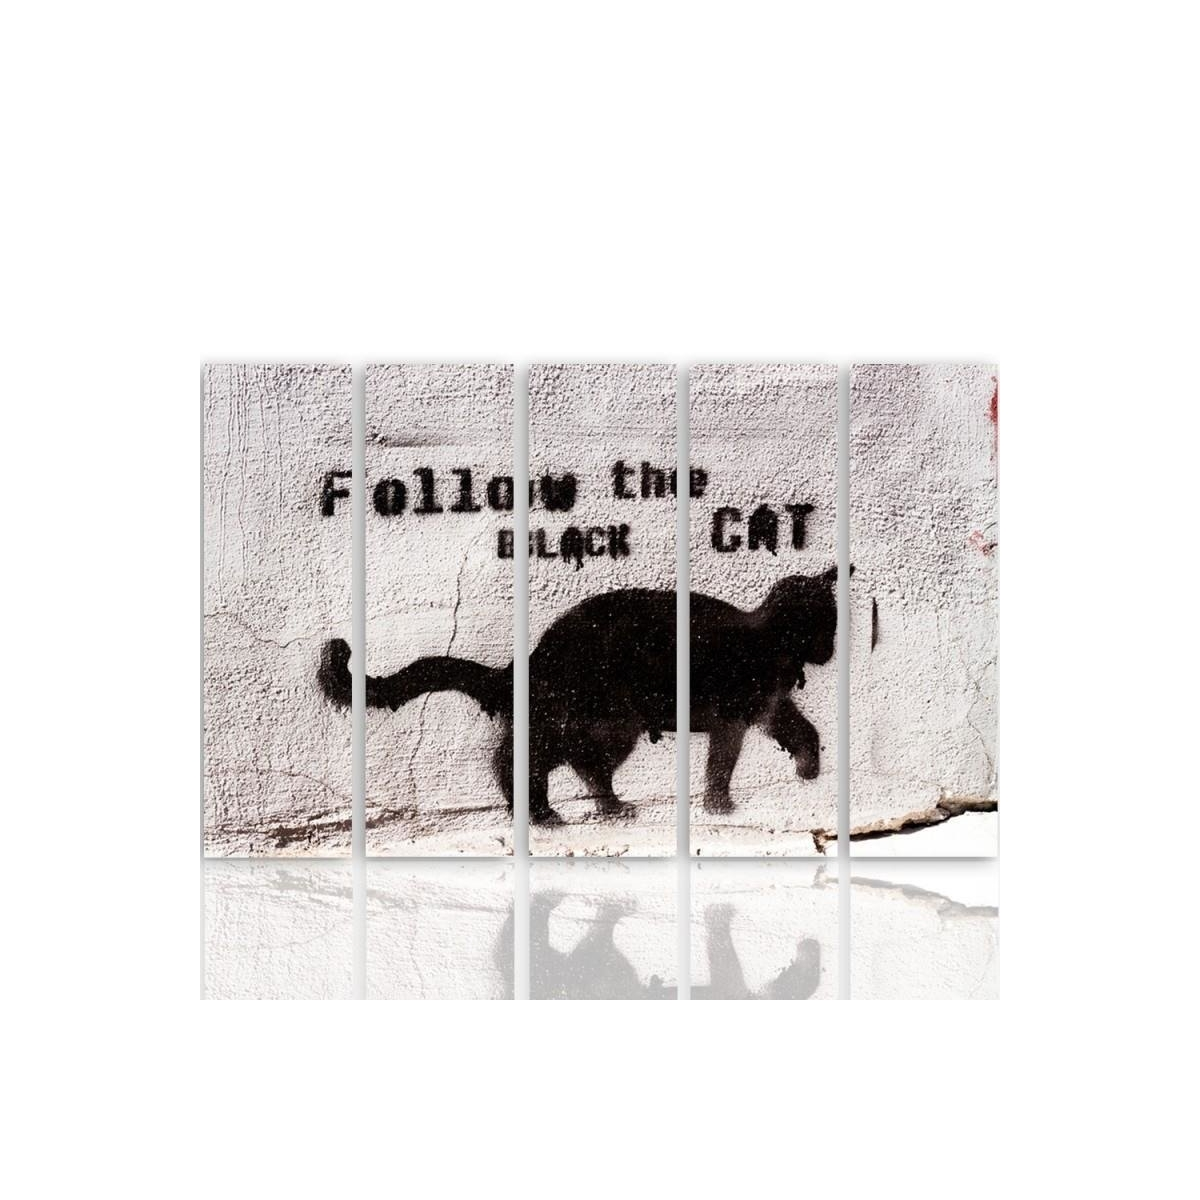 Five Part Picture On Canvas, Pentaptych, Type C, Black Cat 100x150